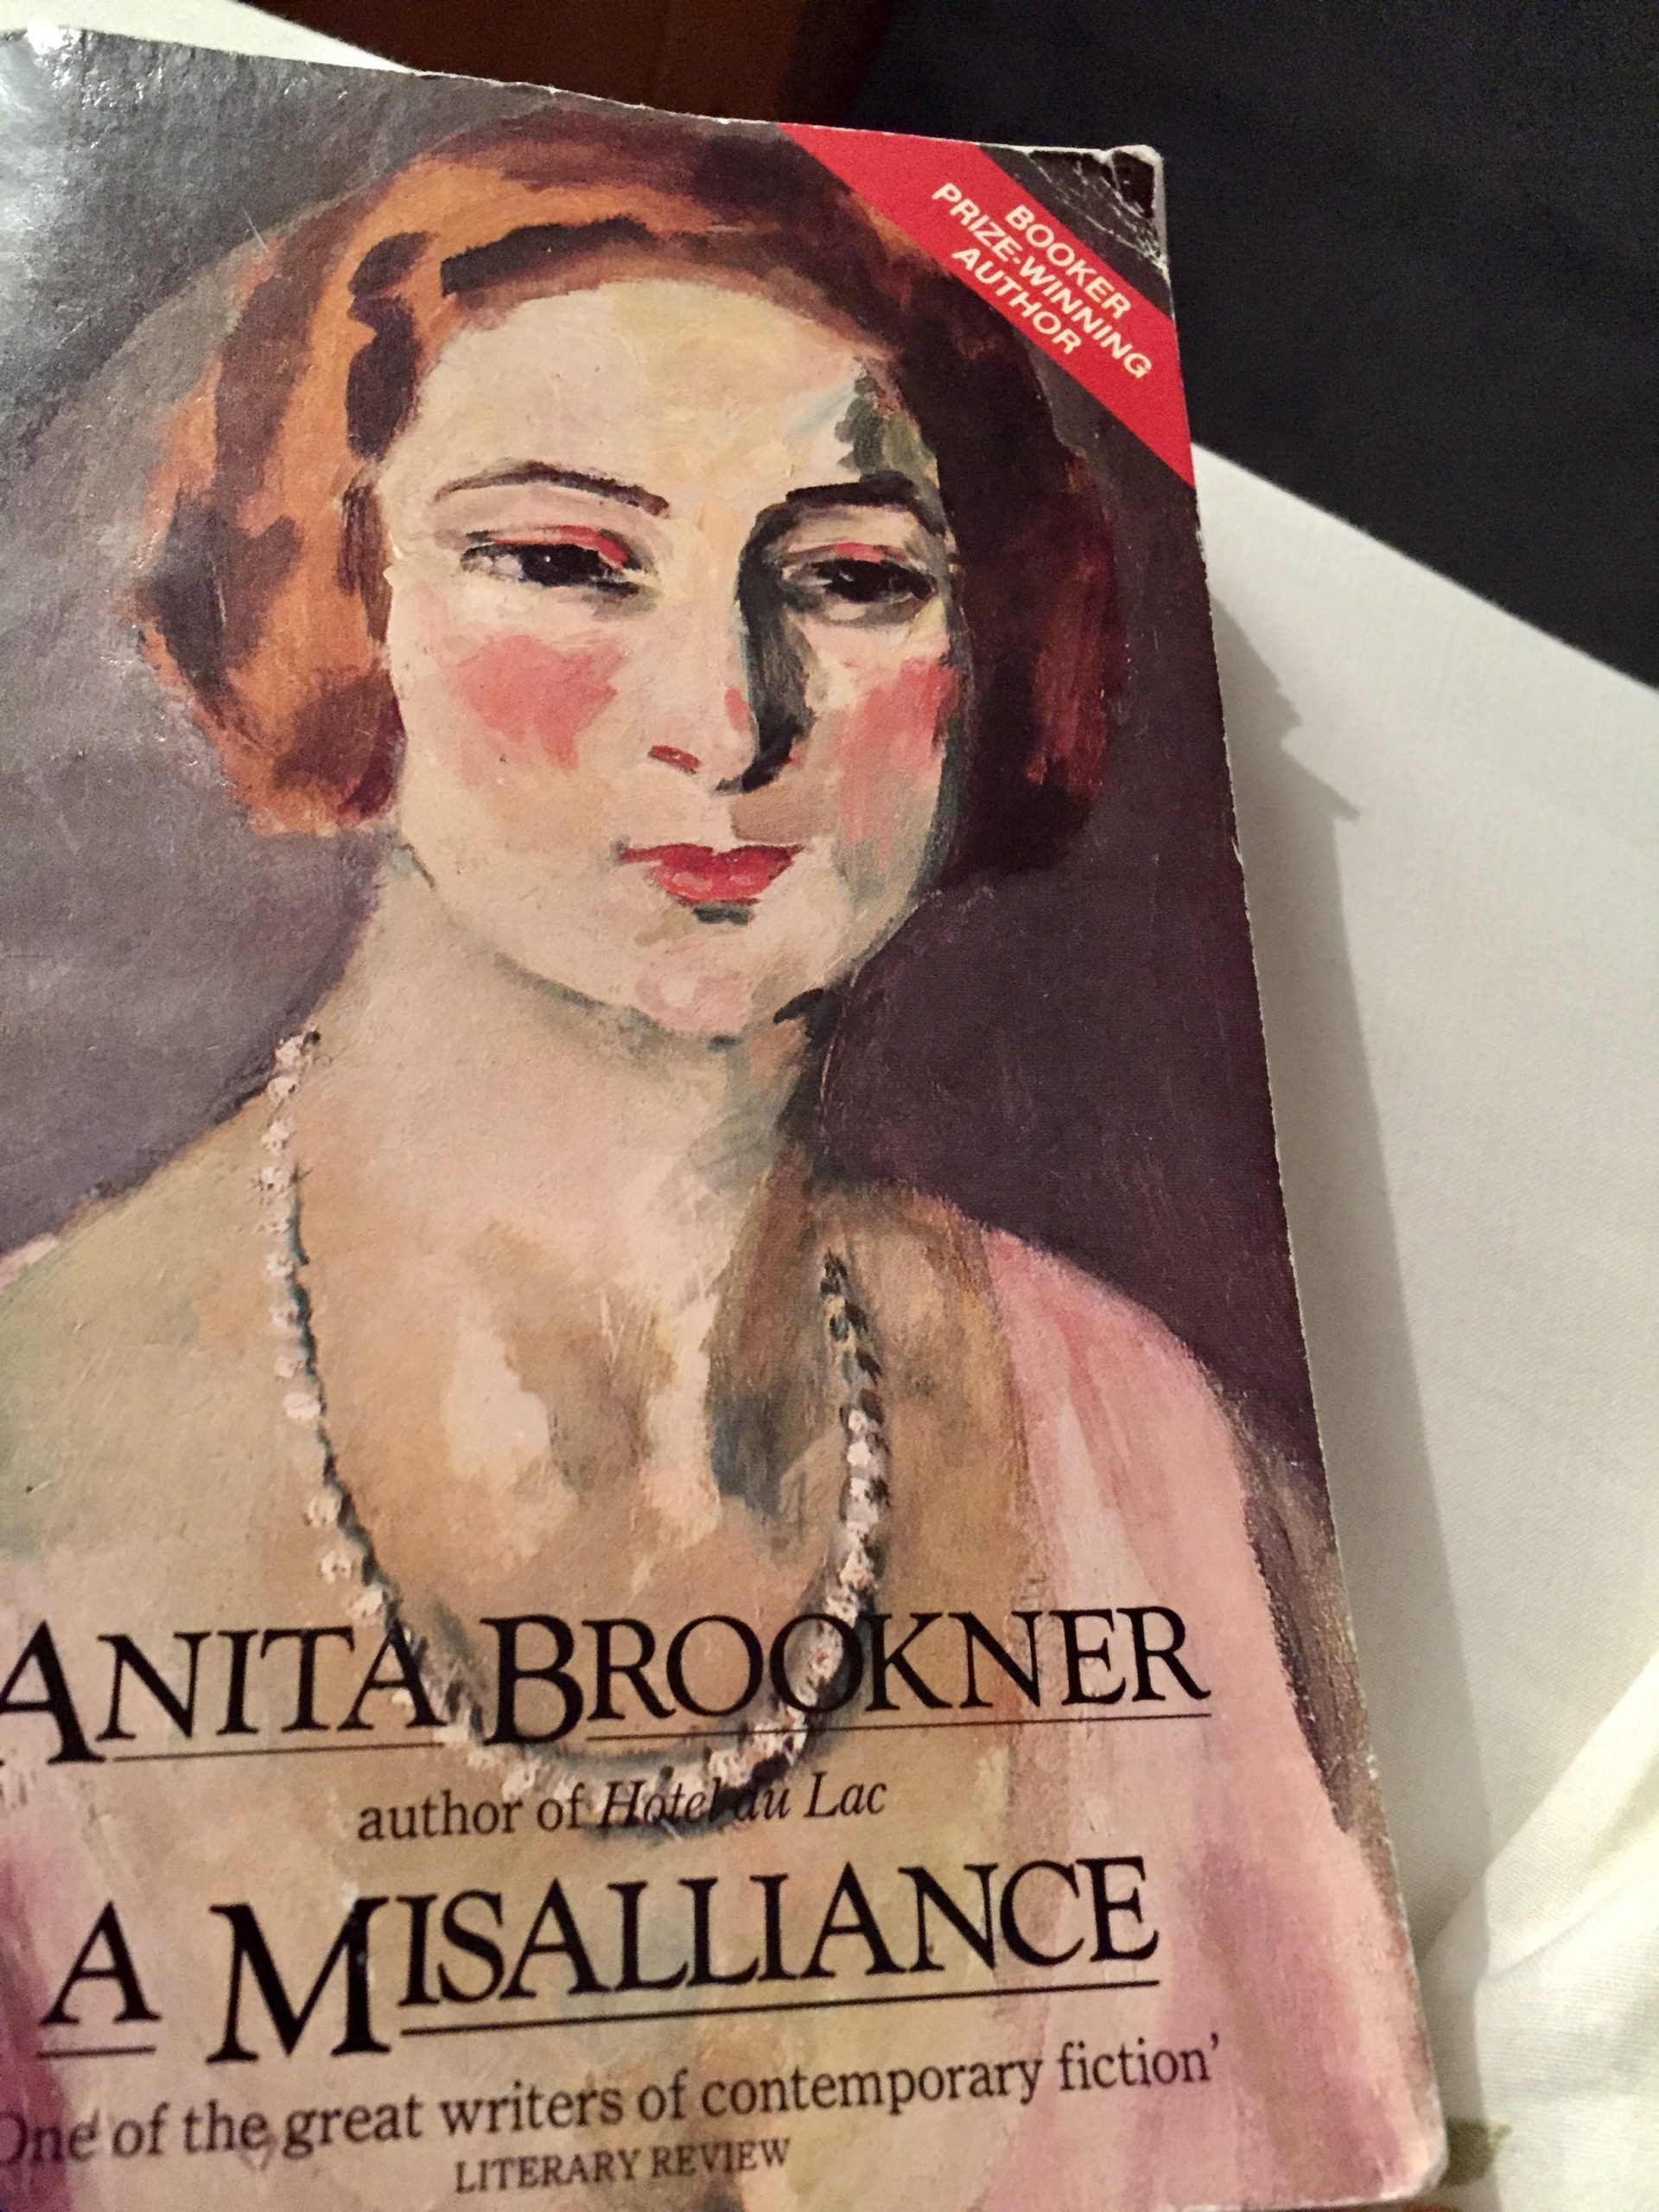 Comfort reading – an old paperback titled A Misalliance by Anita Brookner